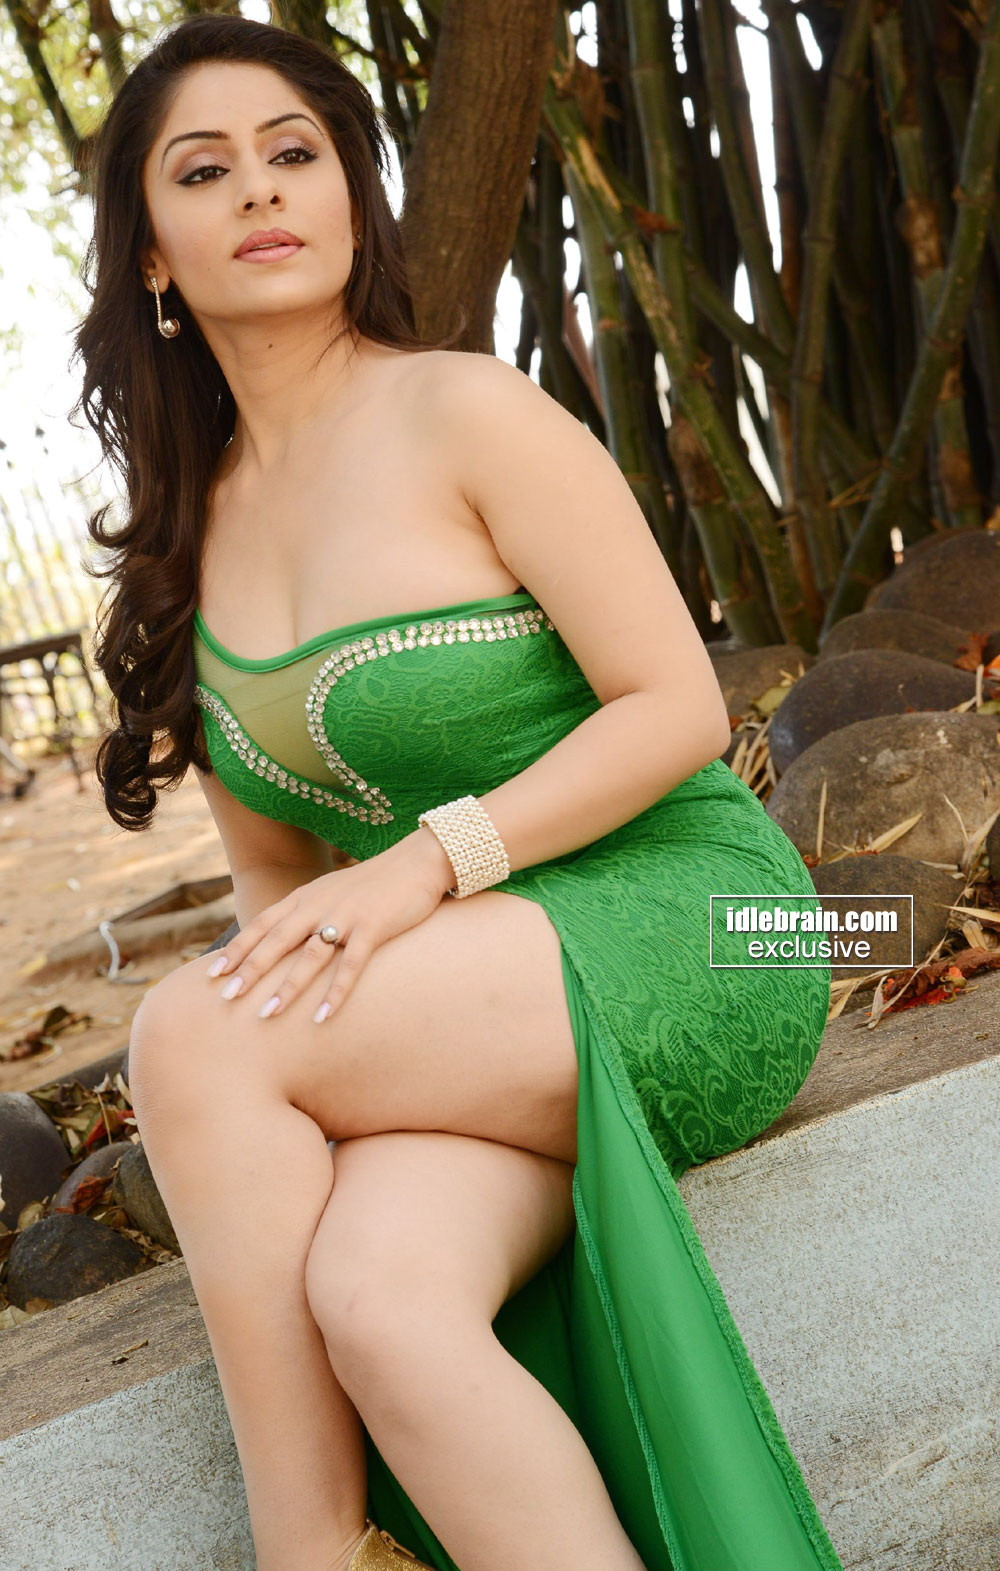 ankita sharma songankita sharma instagram, ankita sharma biography, ankita sharma song, ankita sharma lajwanti biography, ankita sharma wiki, ankita sharma instagram photos, ankita sharma serials, ankita sharma wedding, ankita sharma and samridh bawa, ankita sharma and mayank sharma, ankita sharma lajwanti, ankita sharma dating, ankita sharma husband photos, ankita sharma kimdir, ankita sharma, ankita sharma facebook, ankita sharma twitter, ankita sharma official facebook, ankita sharma 2015, ankita sharma punjabi model